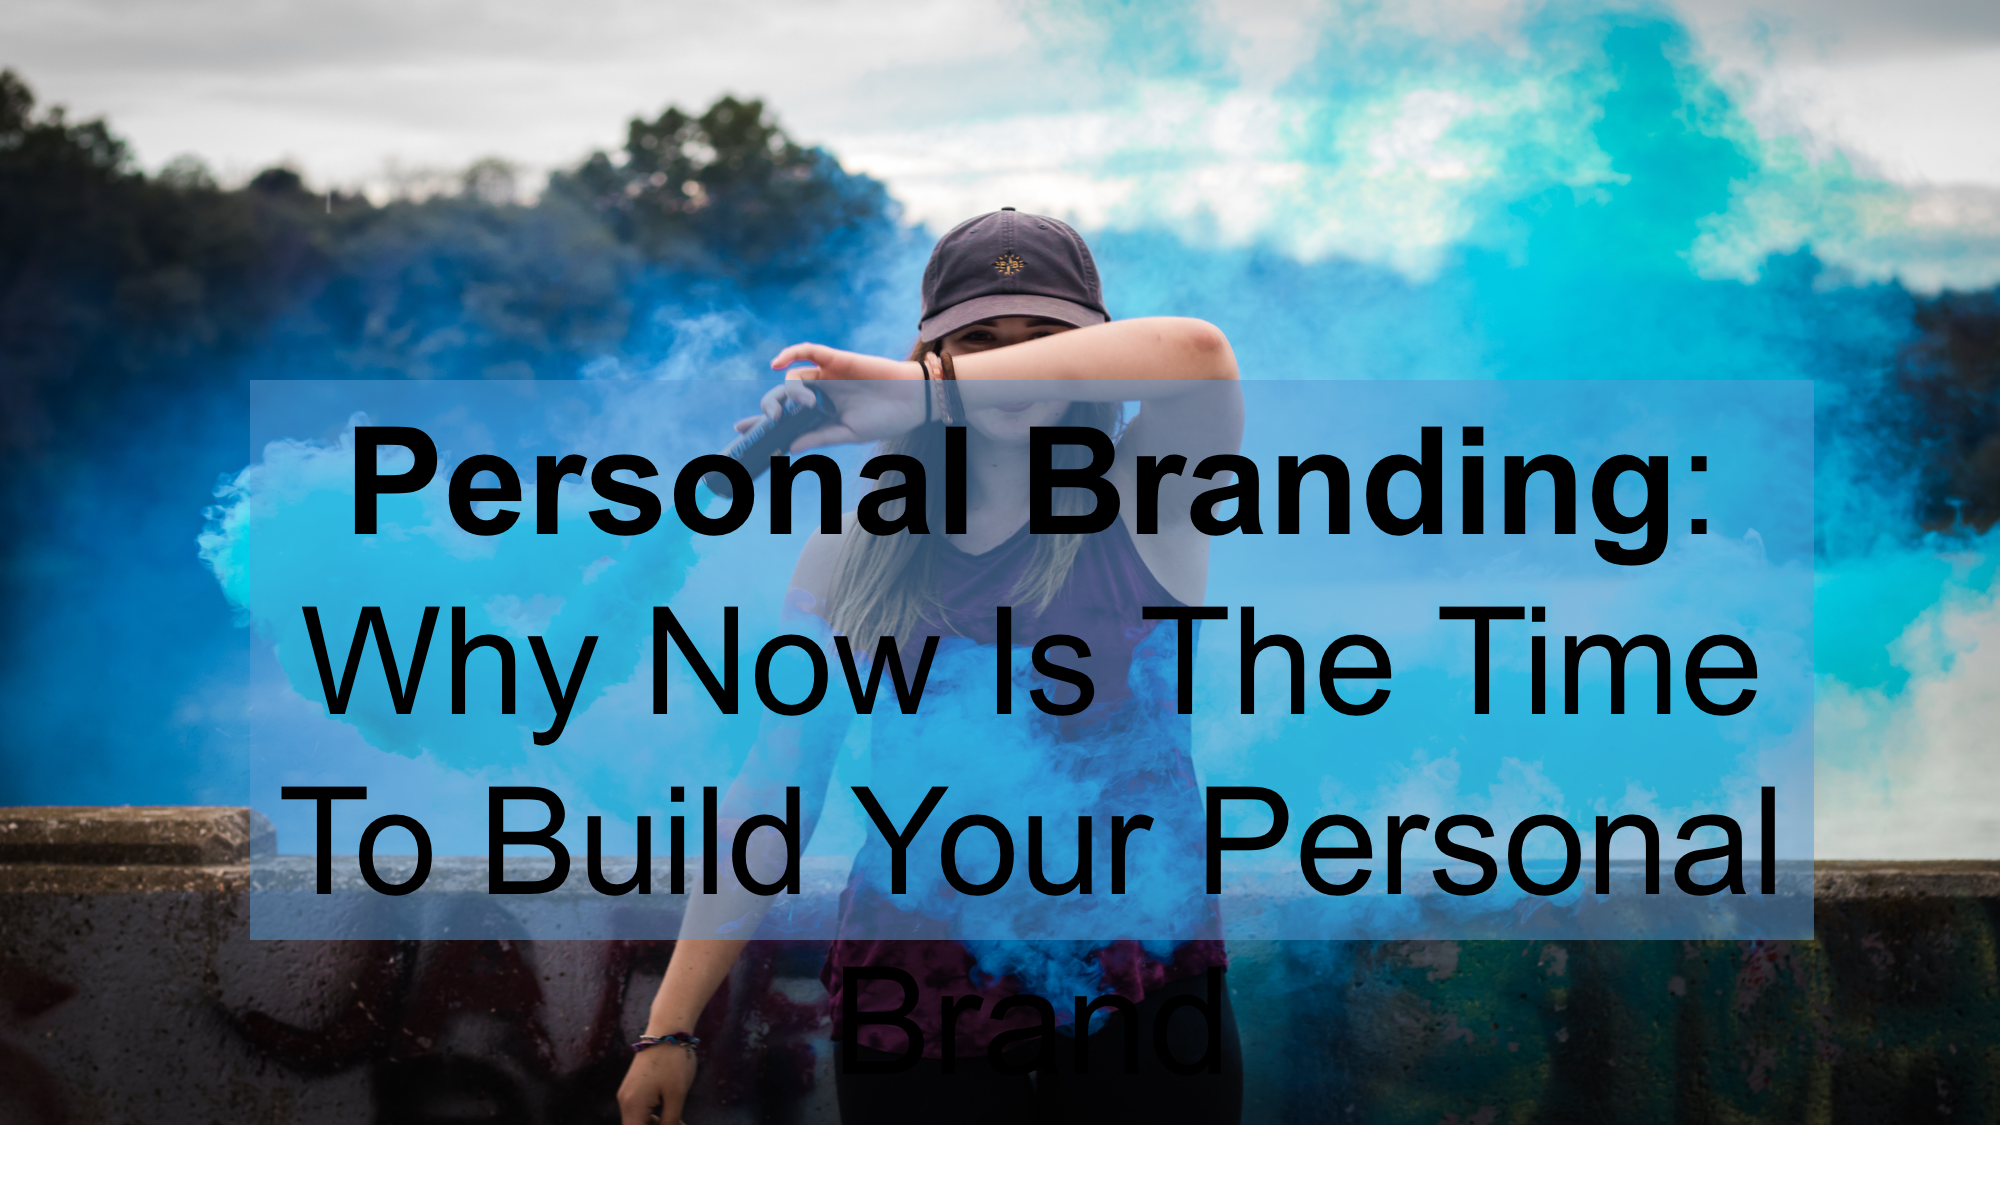 Personal Branding - build your personal brand